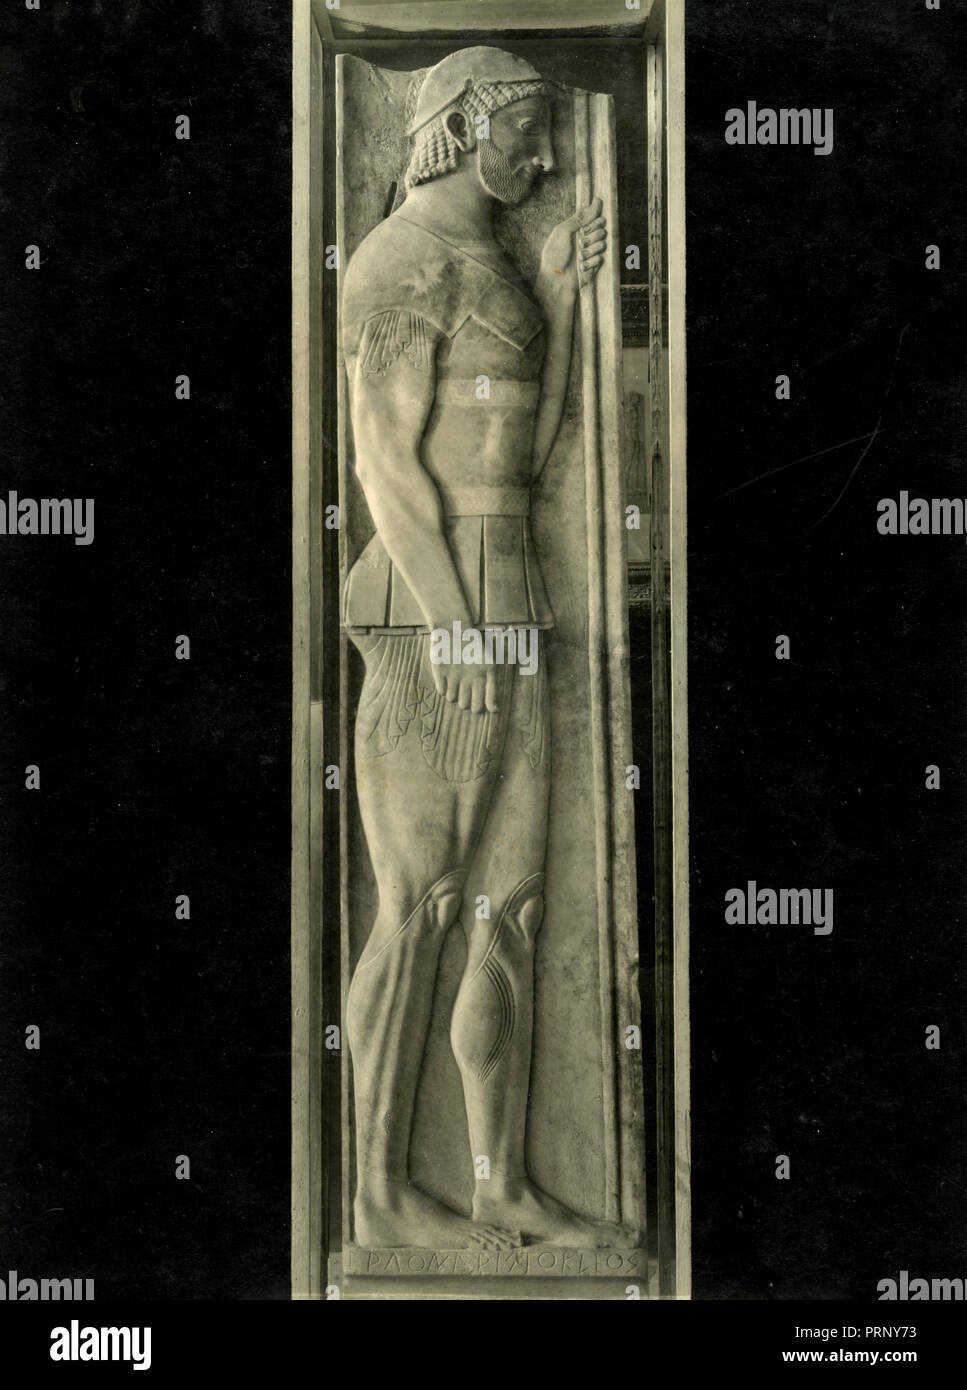 Funerary Stele of Aristion, Greece 1930s - Stock Image